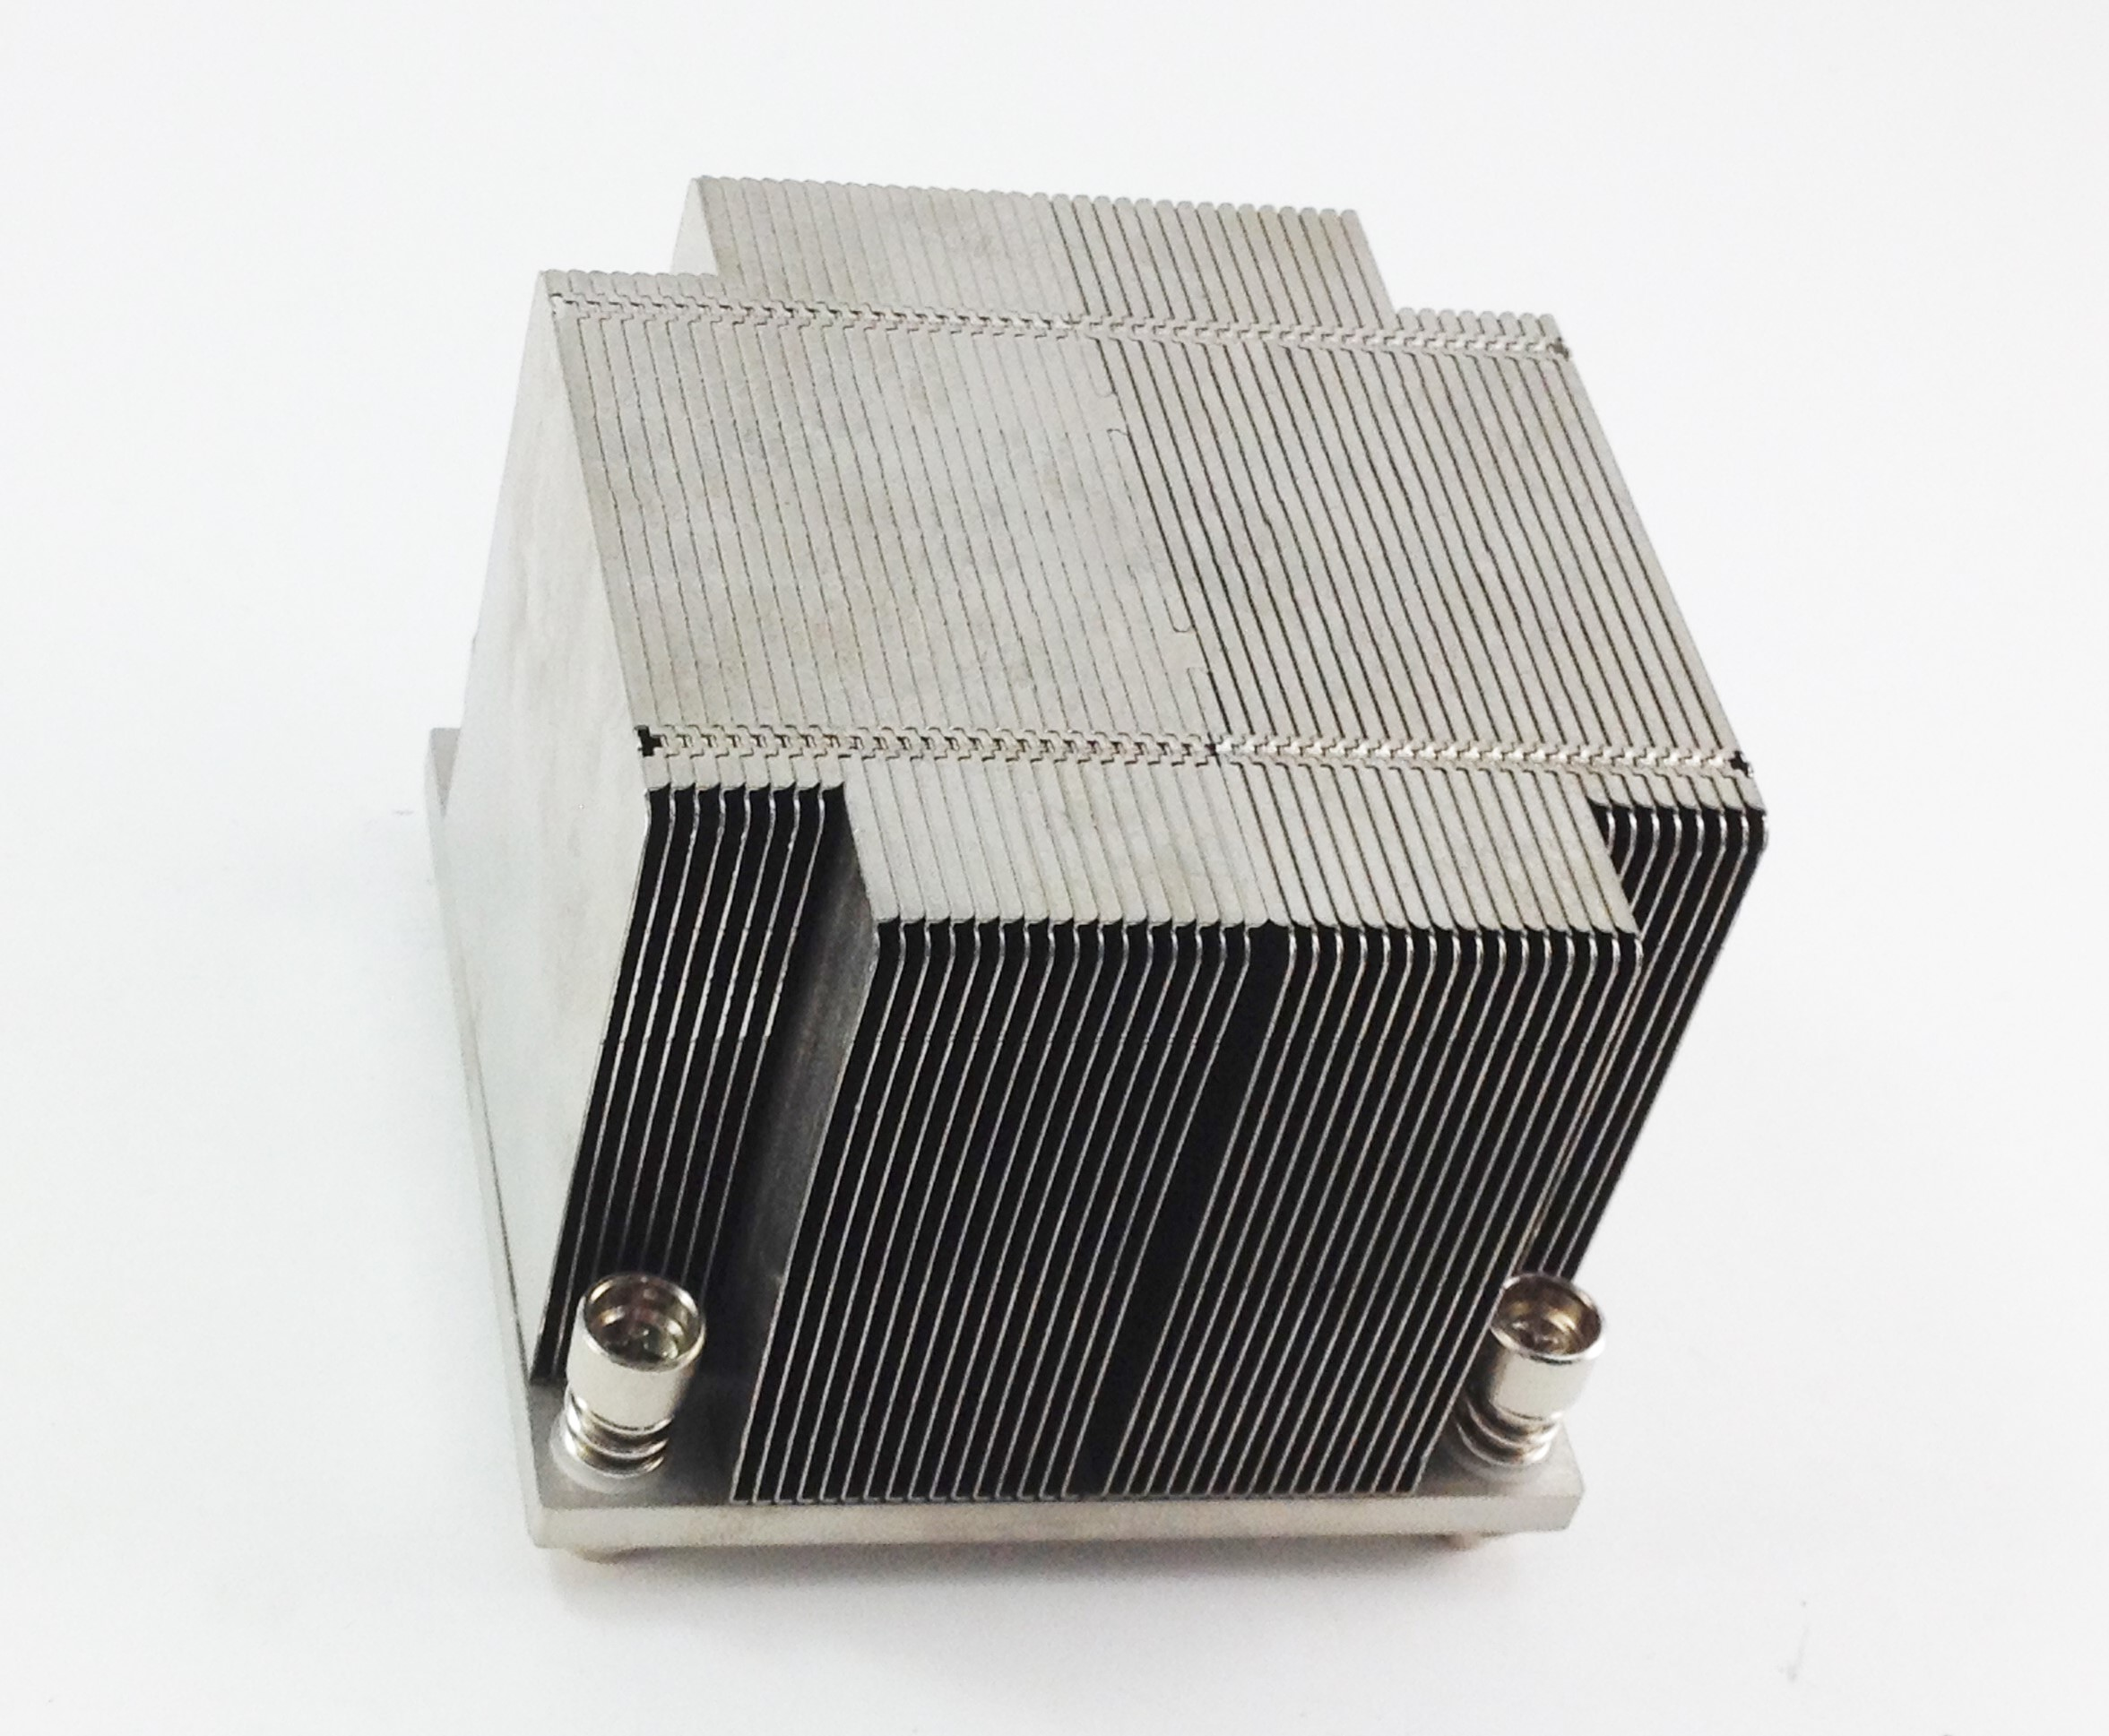 Dell PowerEdge R510 CPU Processor Heatsink (6DMRF)